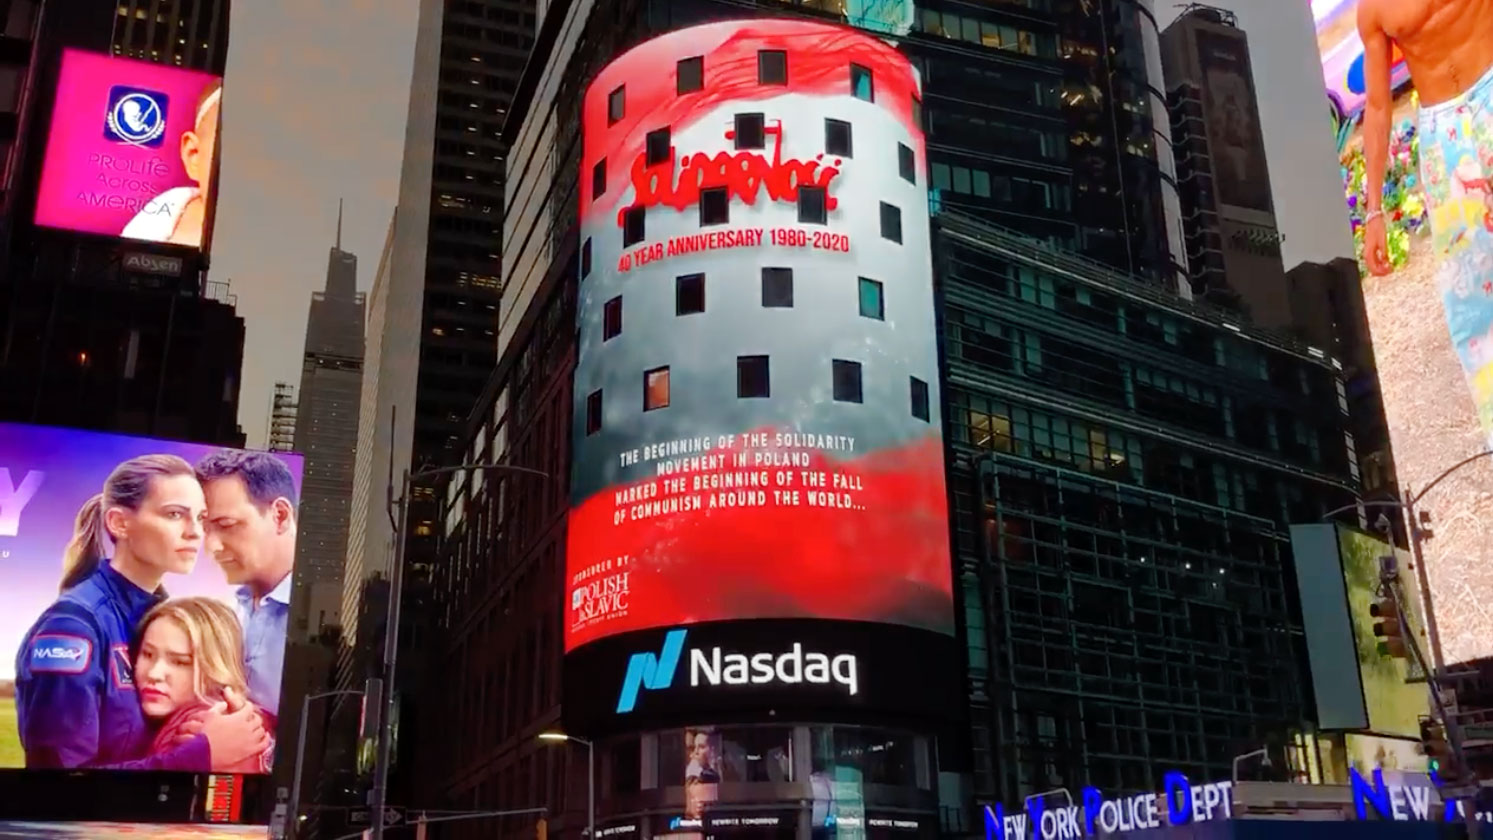 A Special Polish Animation on the NASDAQ Building in New York's Times Square. 40th Anniversary of 'Solidarity' movement